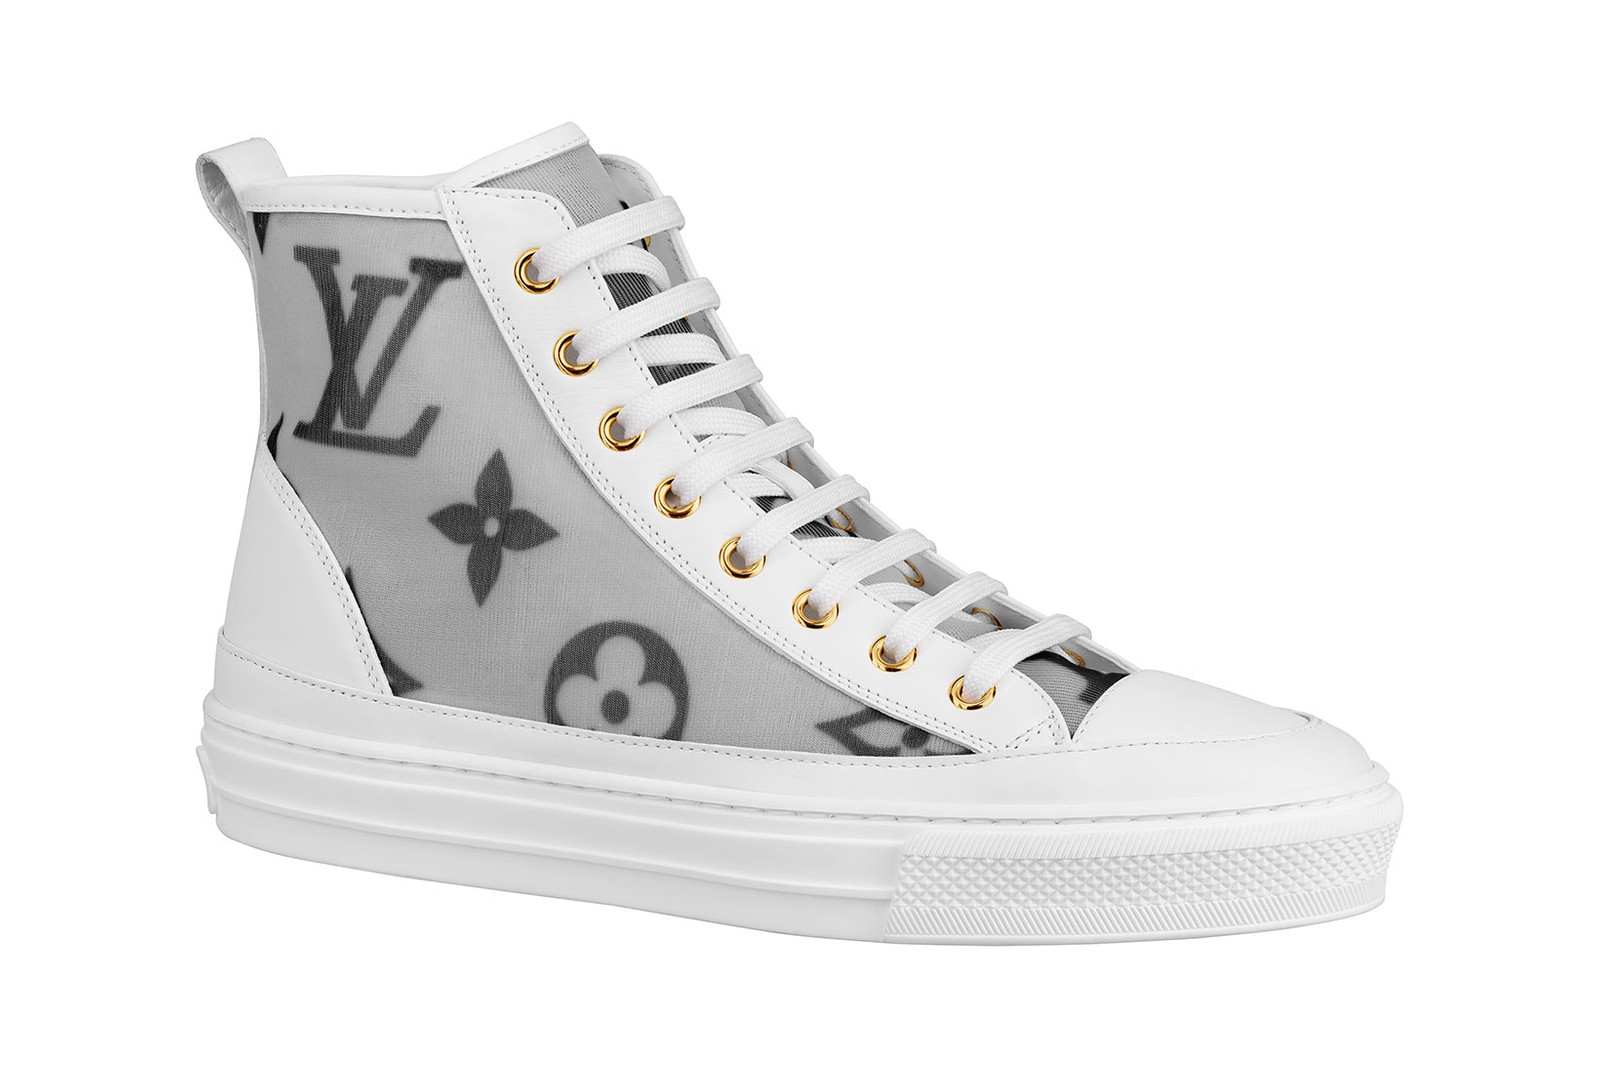 louis vuitton prefall sneakers frontrow boombox stellar lv monogram price